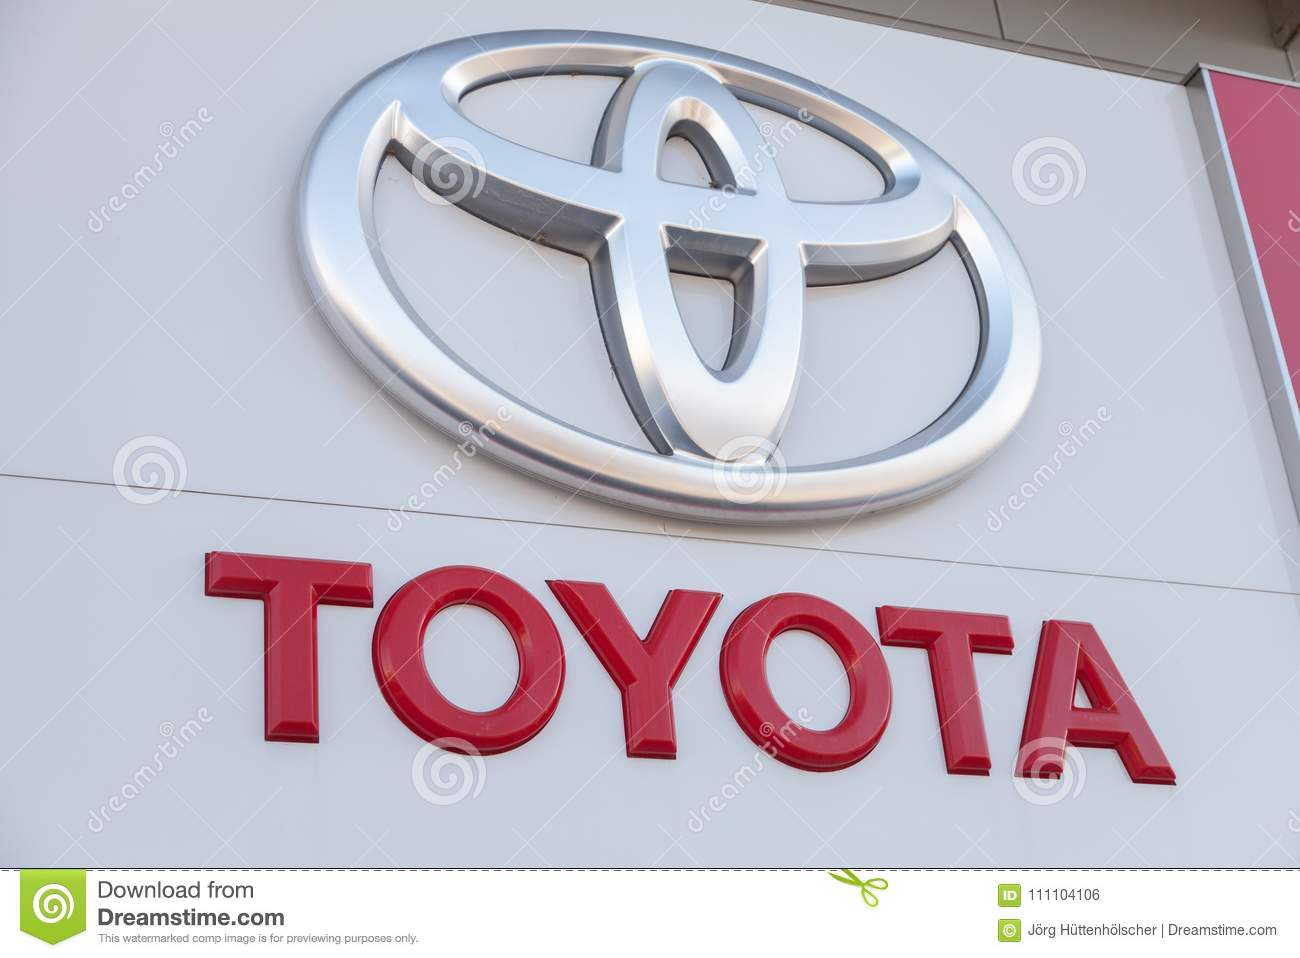 collaborate url connected also southeast w grab q two files in hailing company com drive services wordpress on will the invests billion tech toyota car s uber ride companies asian rival